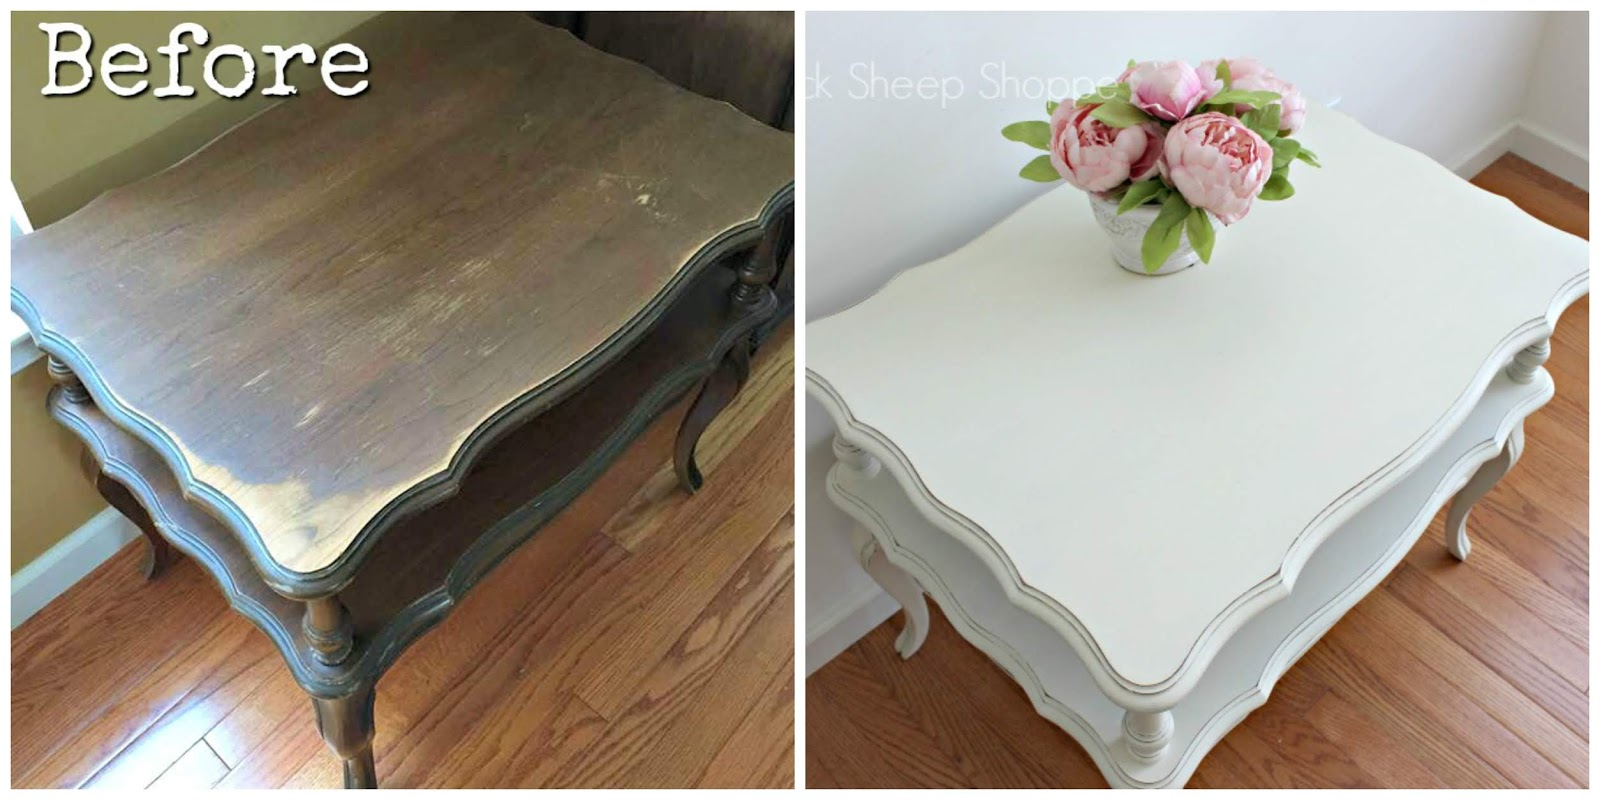 End table before and after. Painted in Old White Chalk Paint.